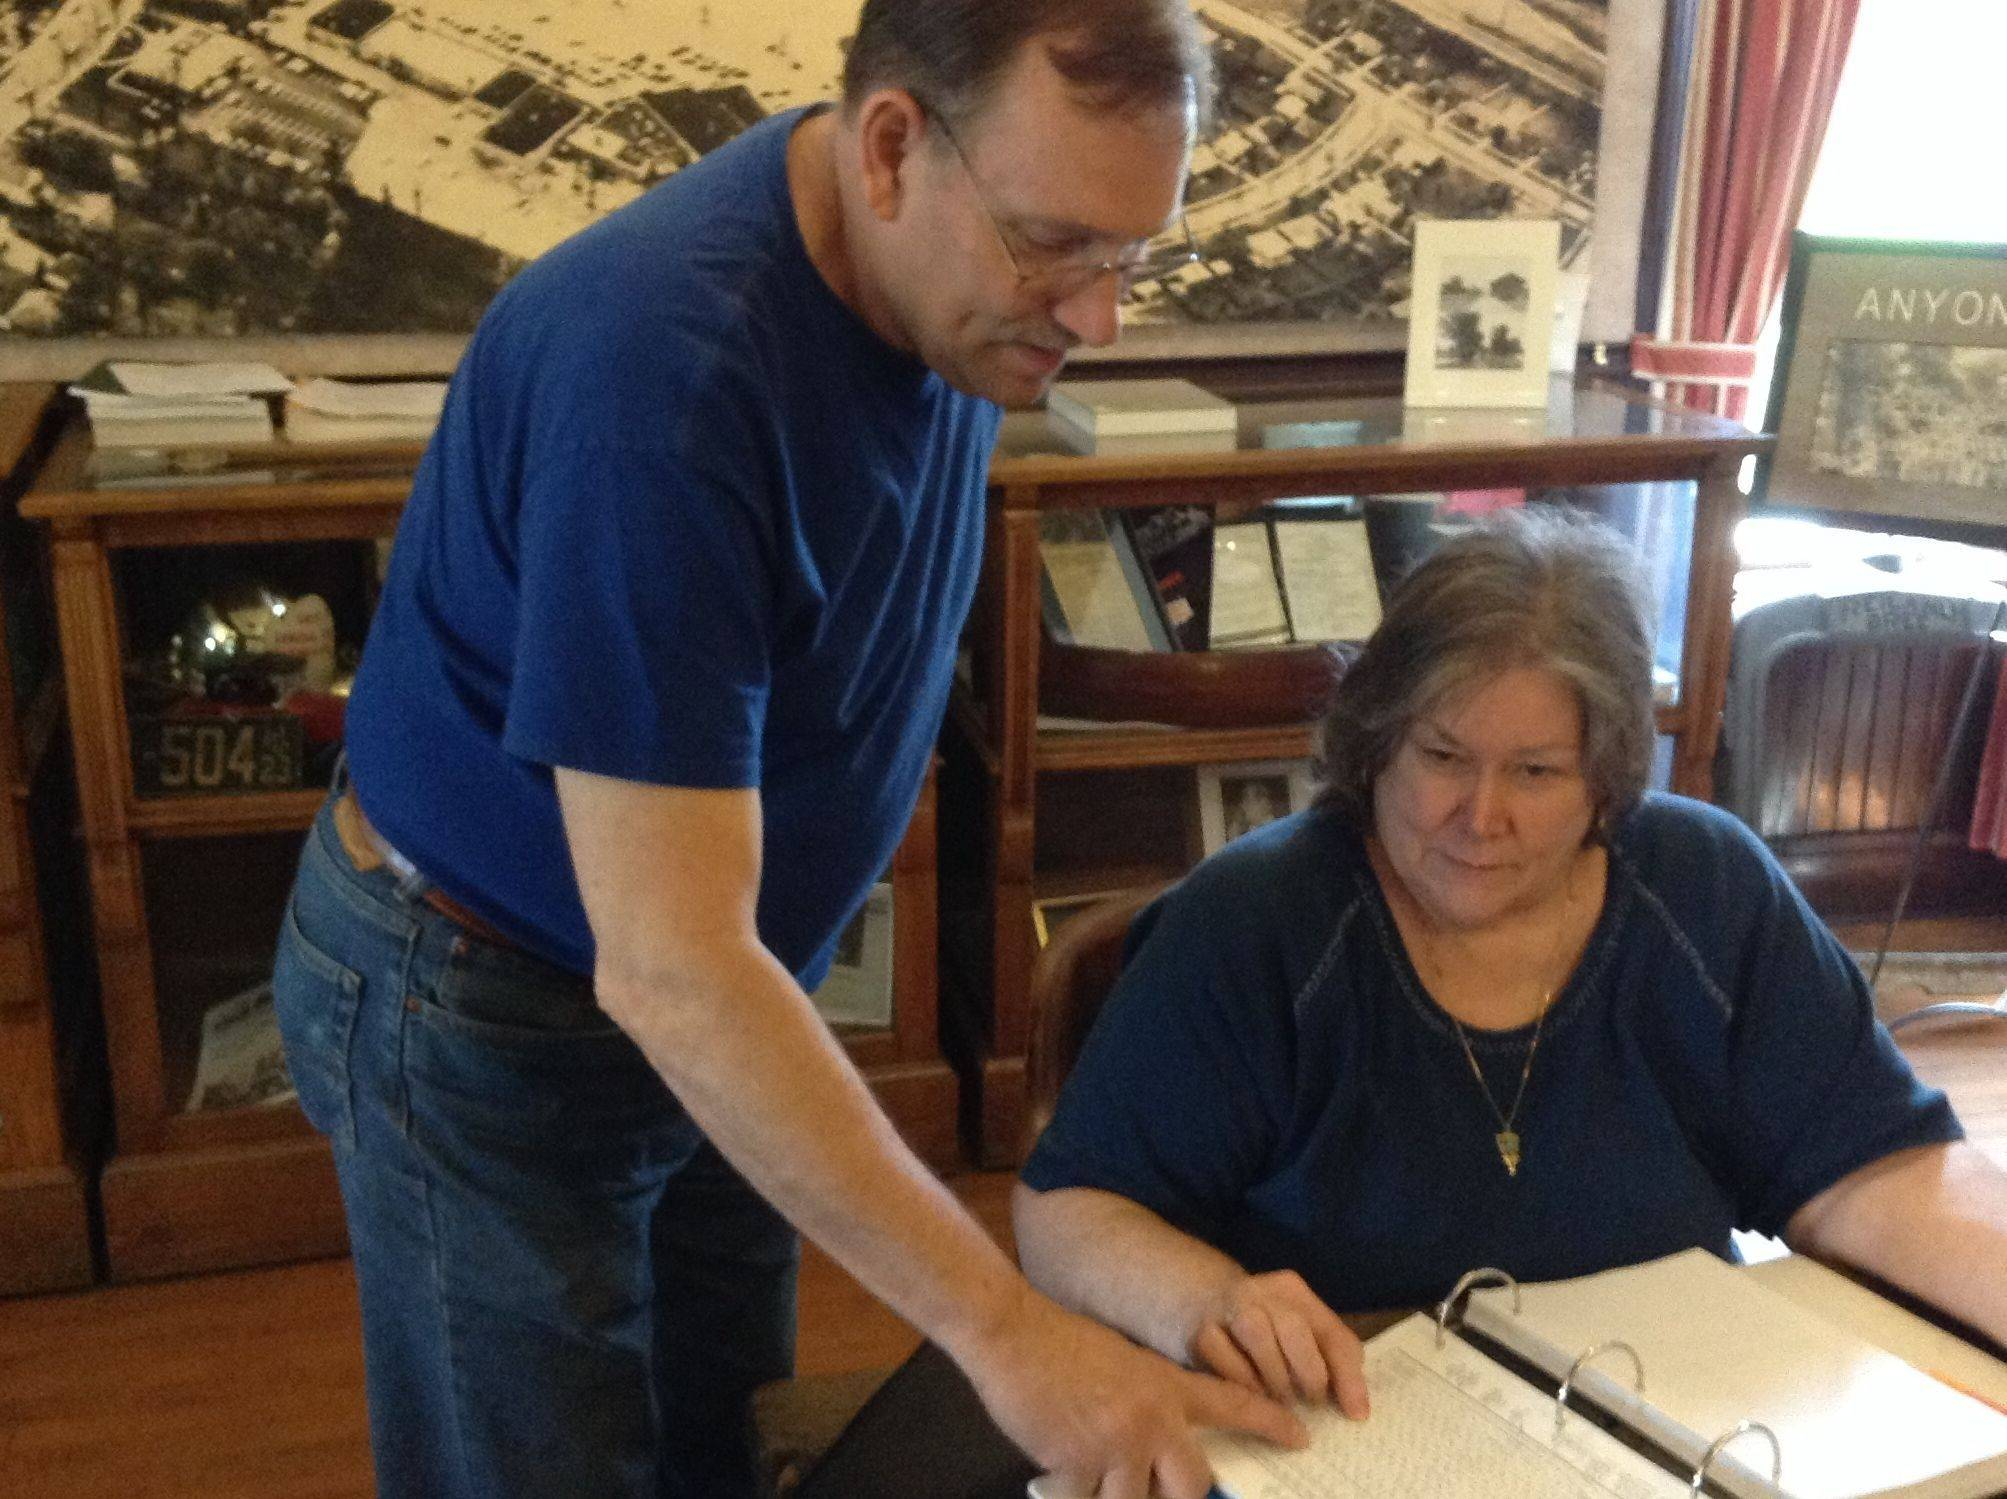 Looking through reams of records at the Northbrook Historical Society, President Judy Hughes and board member Ron Schinleber find information on Schinleber's 19th-century relatives, who were among the first German immigrants to settle in the land that once was home to the Potawatomi tribes.